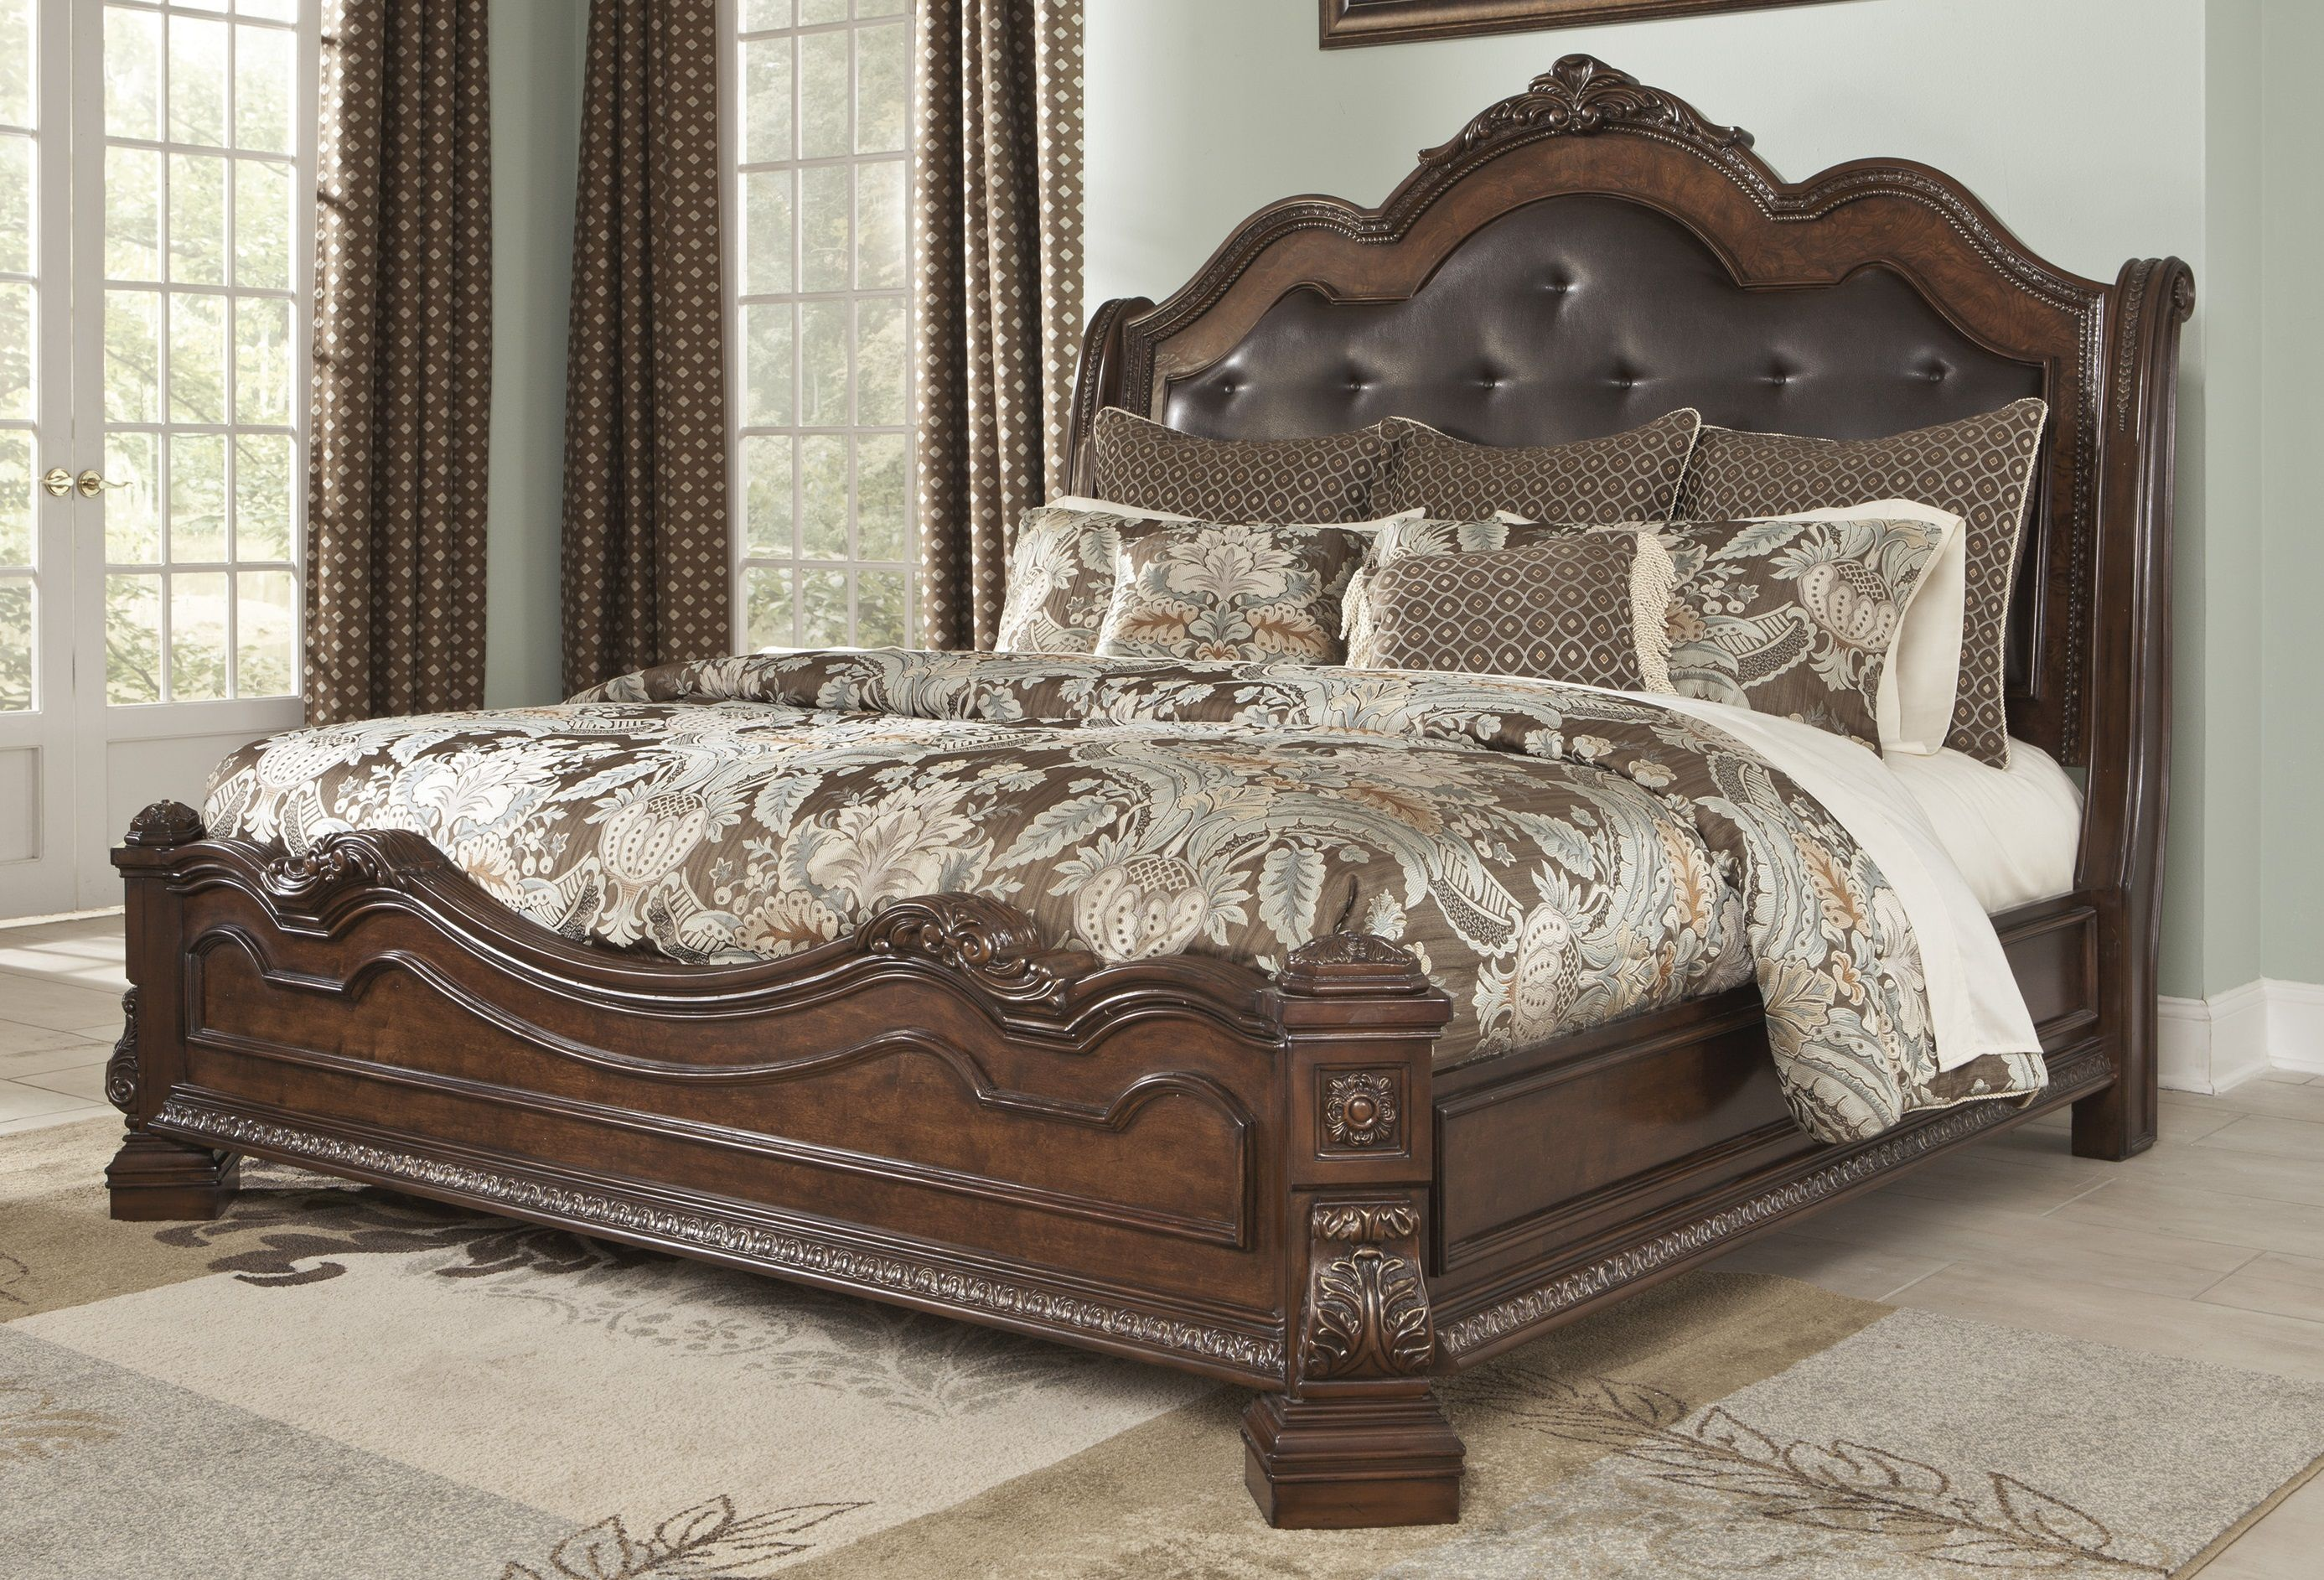 Adele King Upholstered Bed By Ashley At Crowley Furniture In